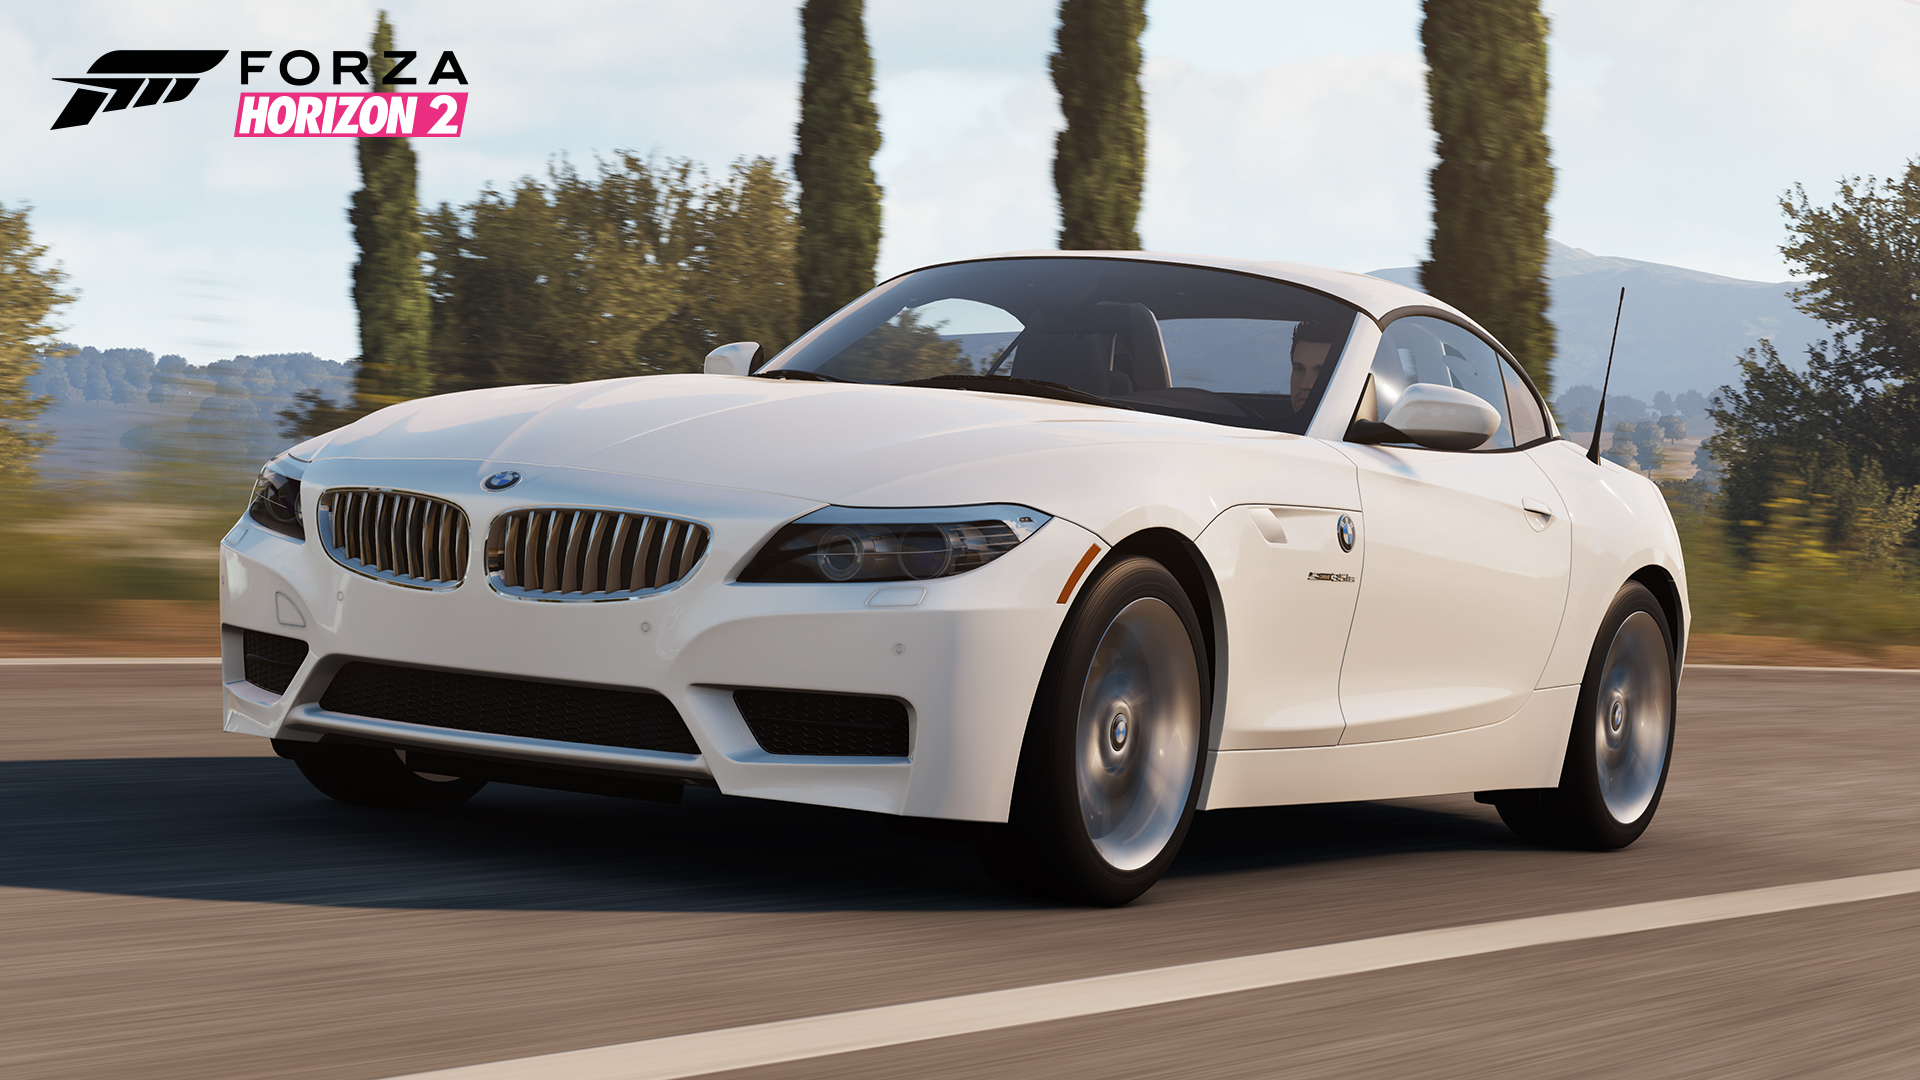 forza horizon 2 16 nouvelles voitures pr sent es plan te. Black Bedroom Furniture Sets. Home Design Ideas